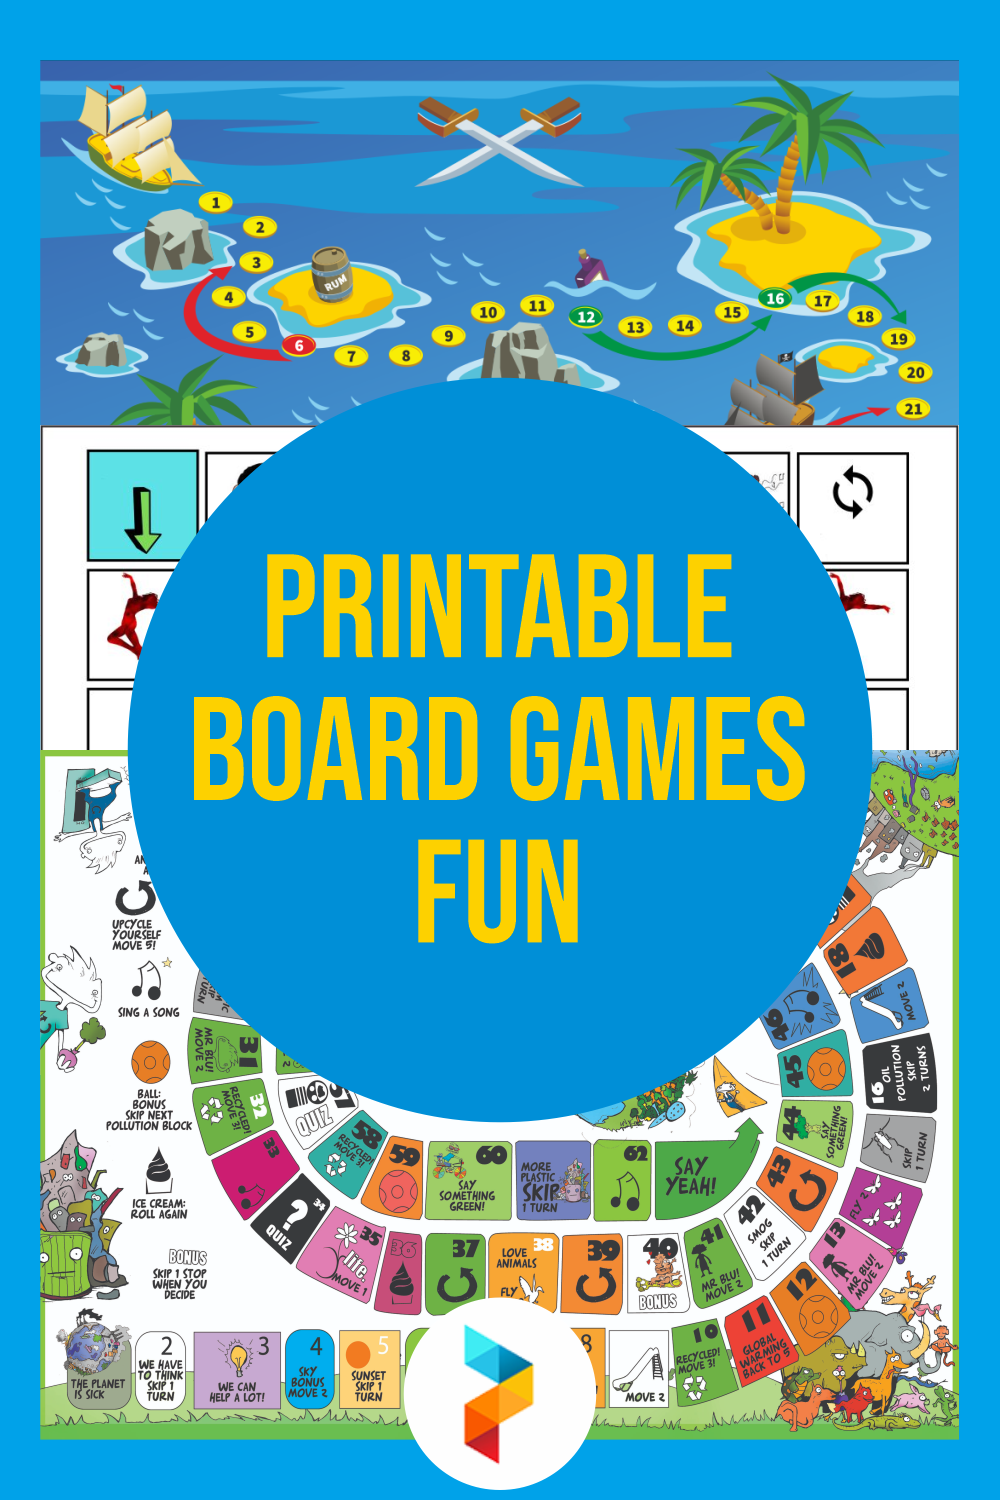 Printable Board Games Fun